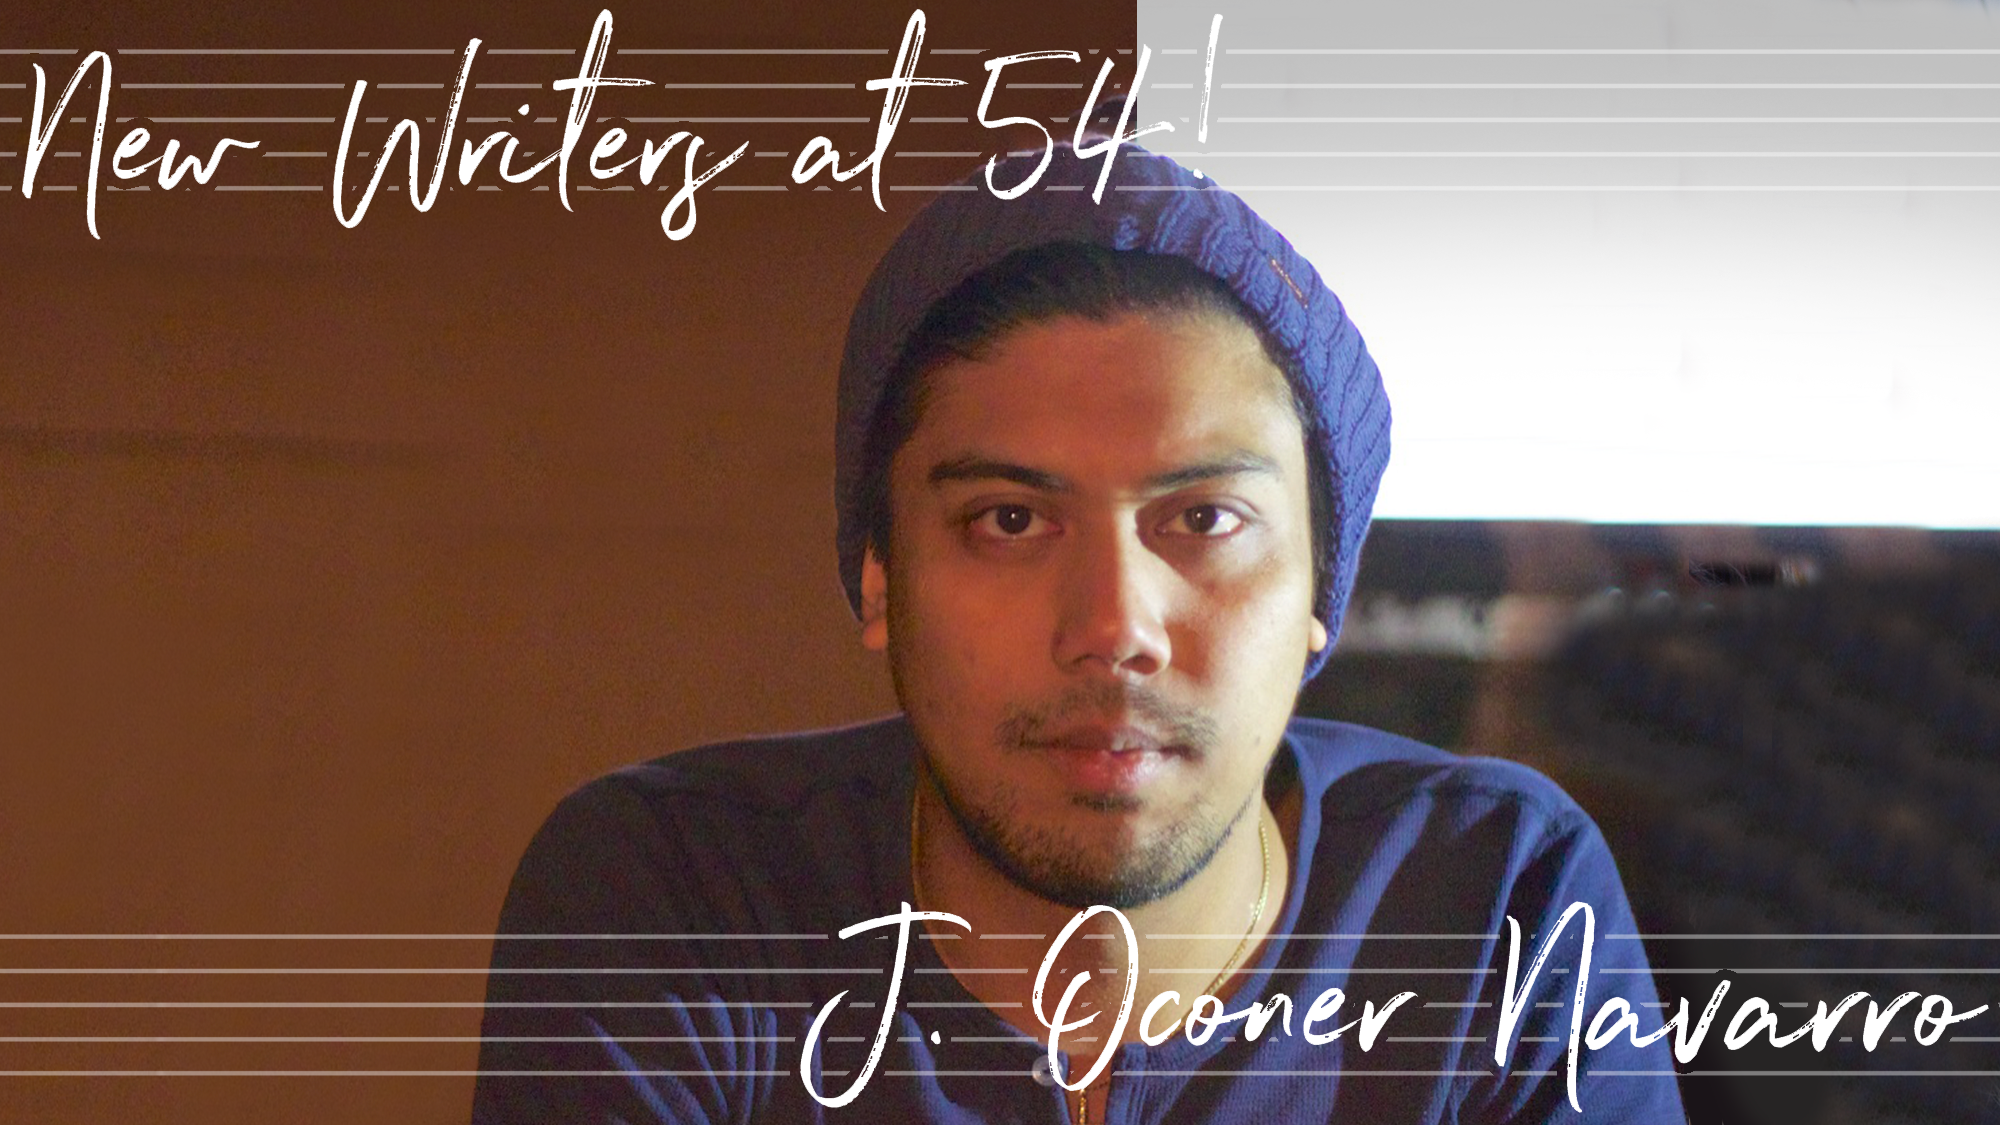 New Writers at 54! J. Oconer Navarro